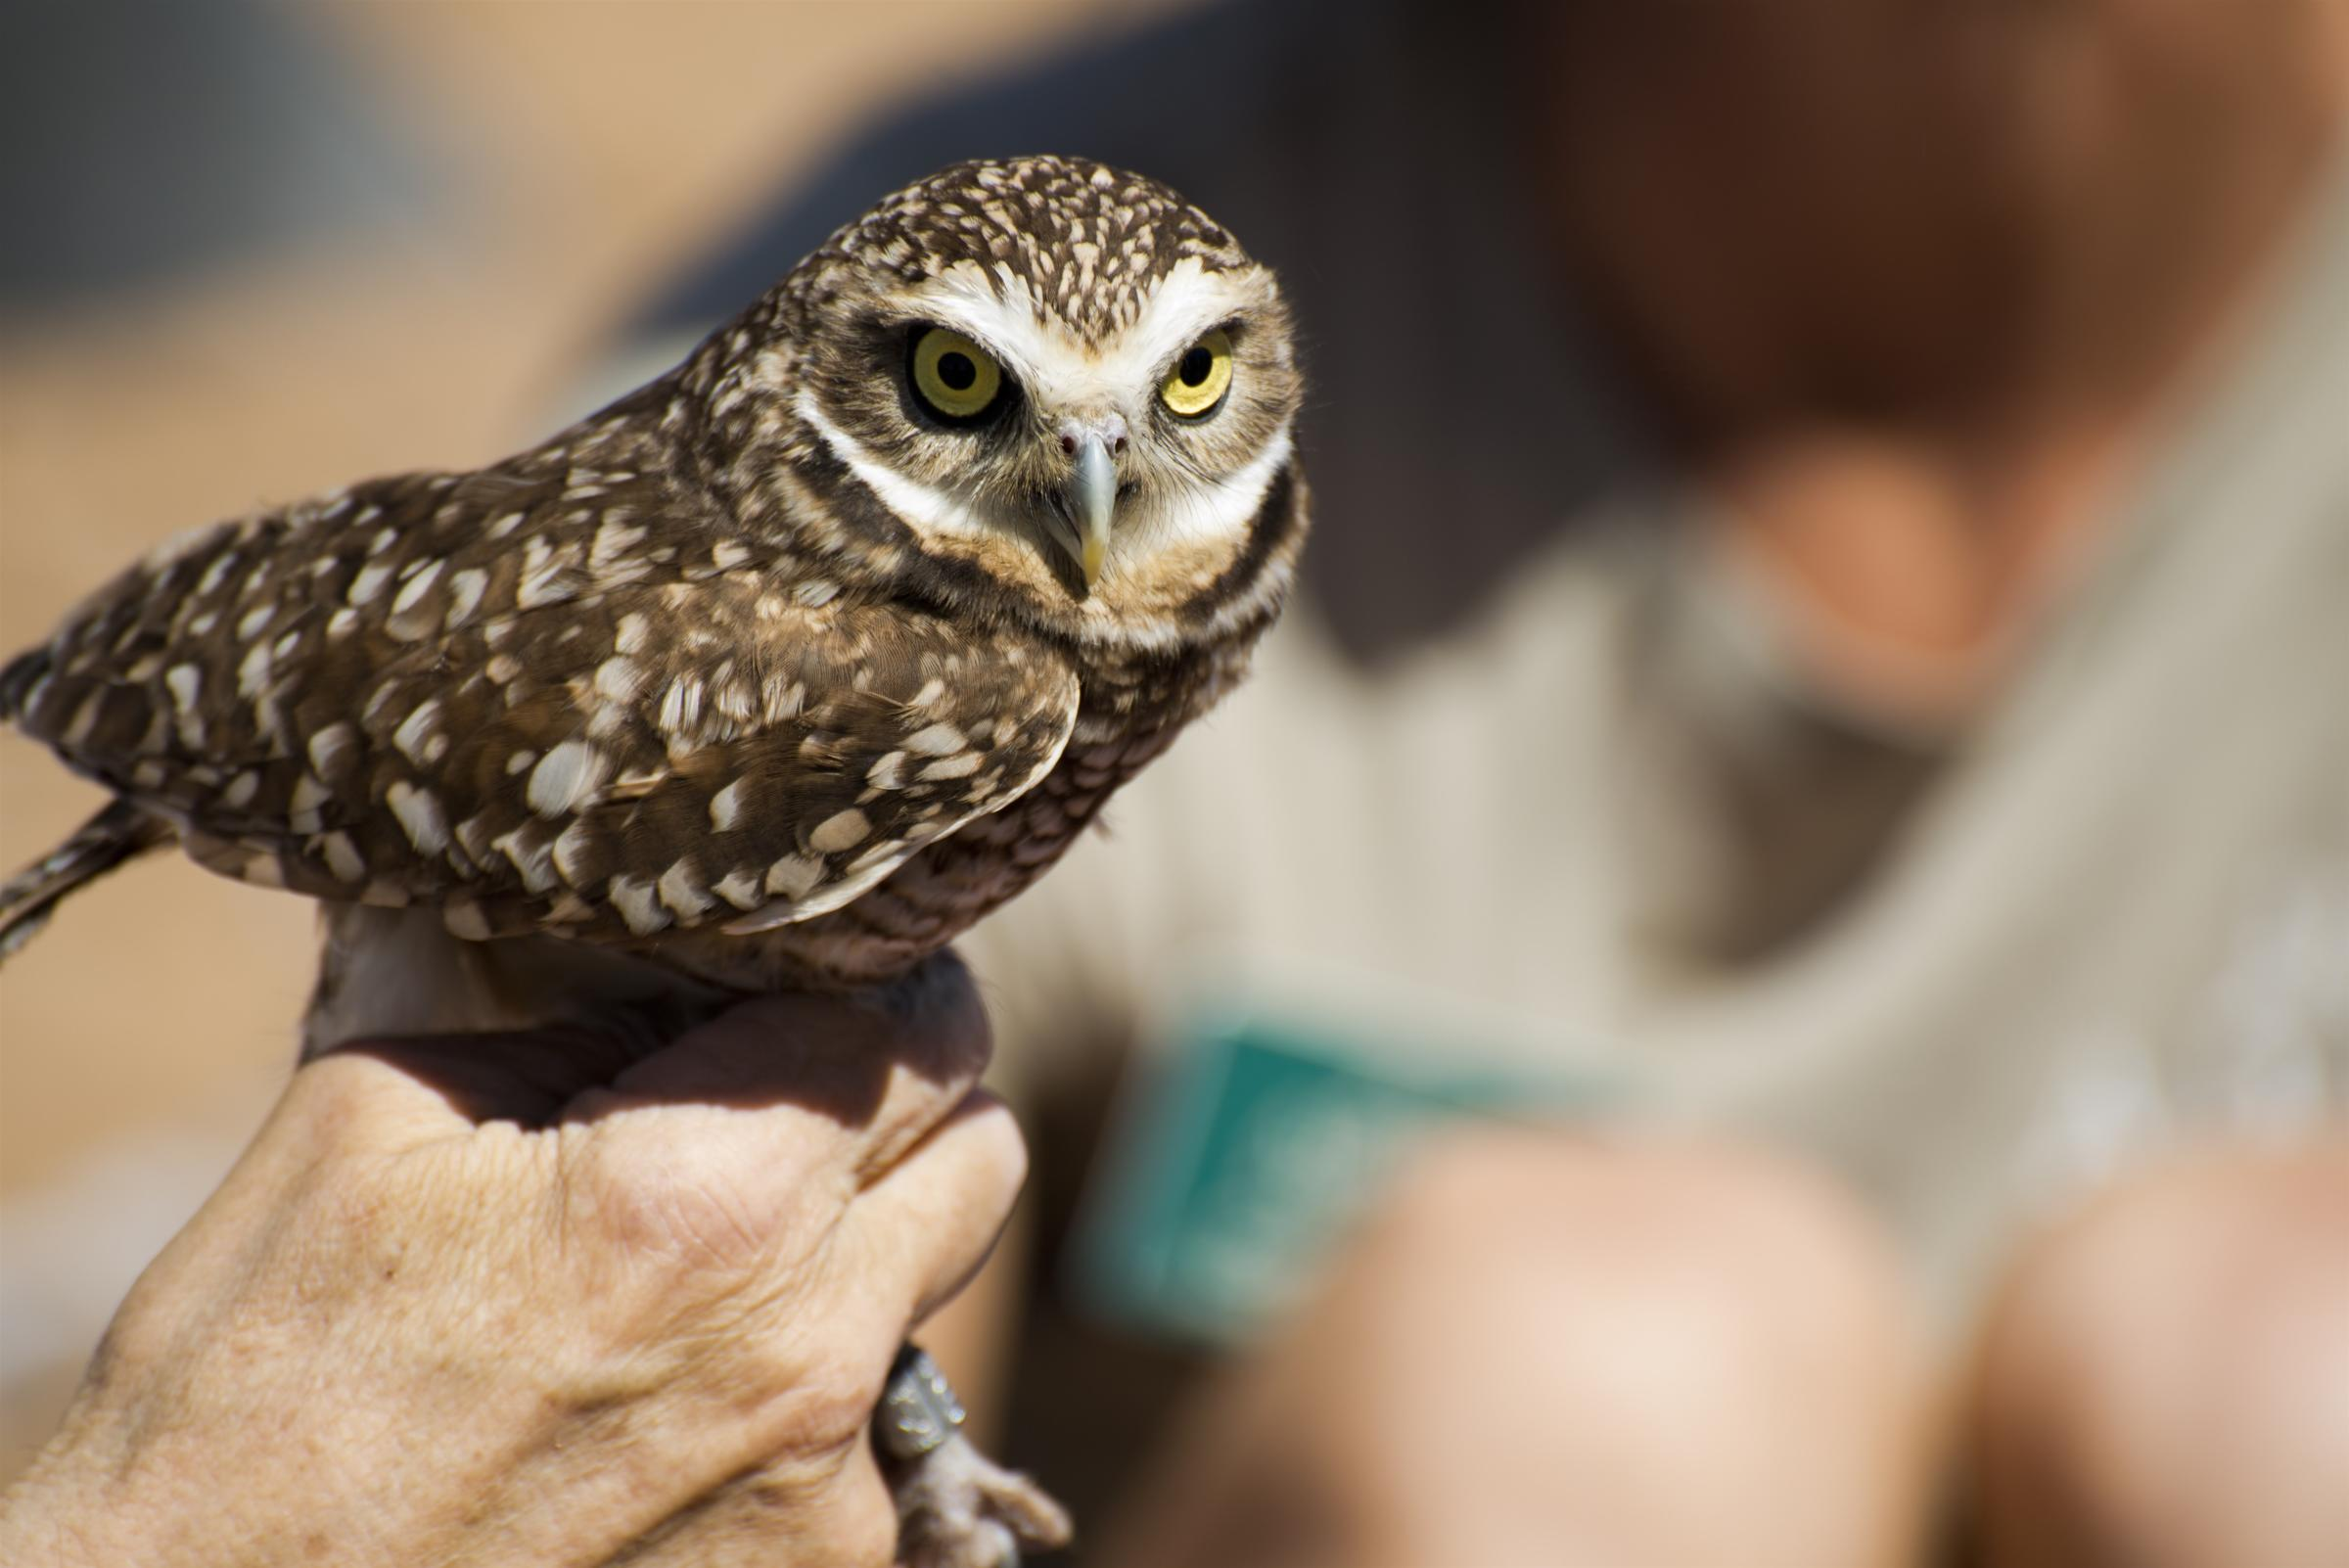 A Burrowing Owl rests in the hand of a conservationist.